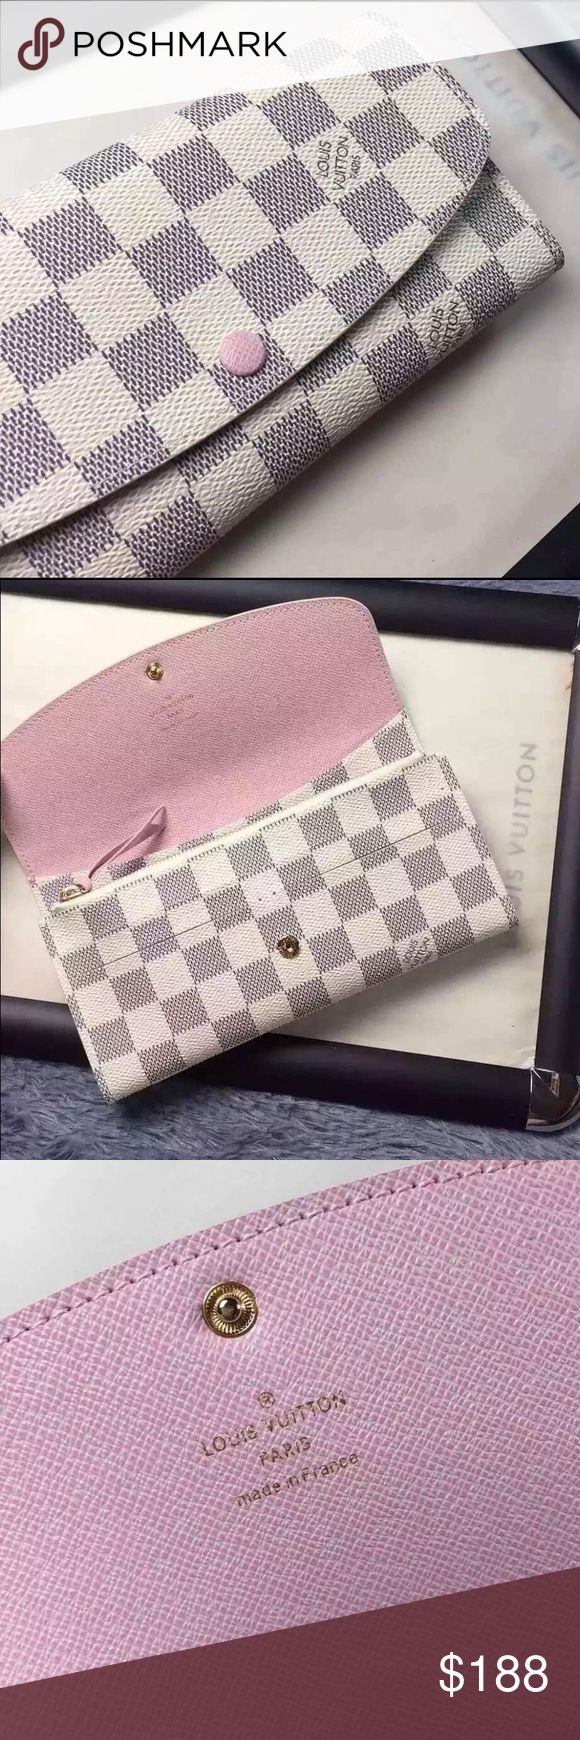 *NFS* Just sharing. Emilie wallet! My Emilie wallet in DA with Rose Ballerine interior. If interested, please comment. Price listed is through ♏️. Louis Vuitton Bags Wallets